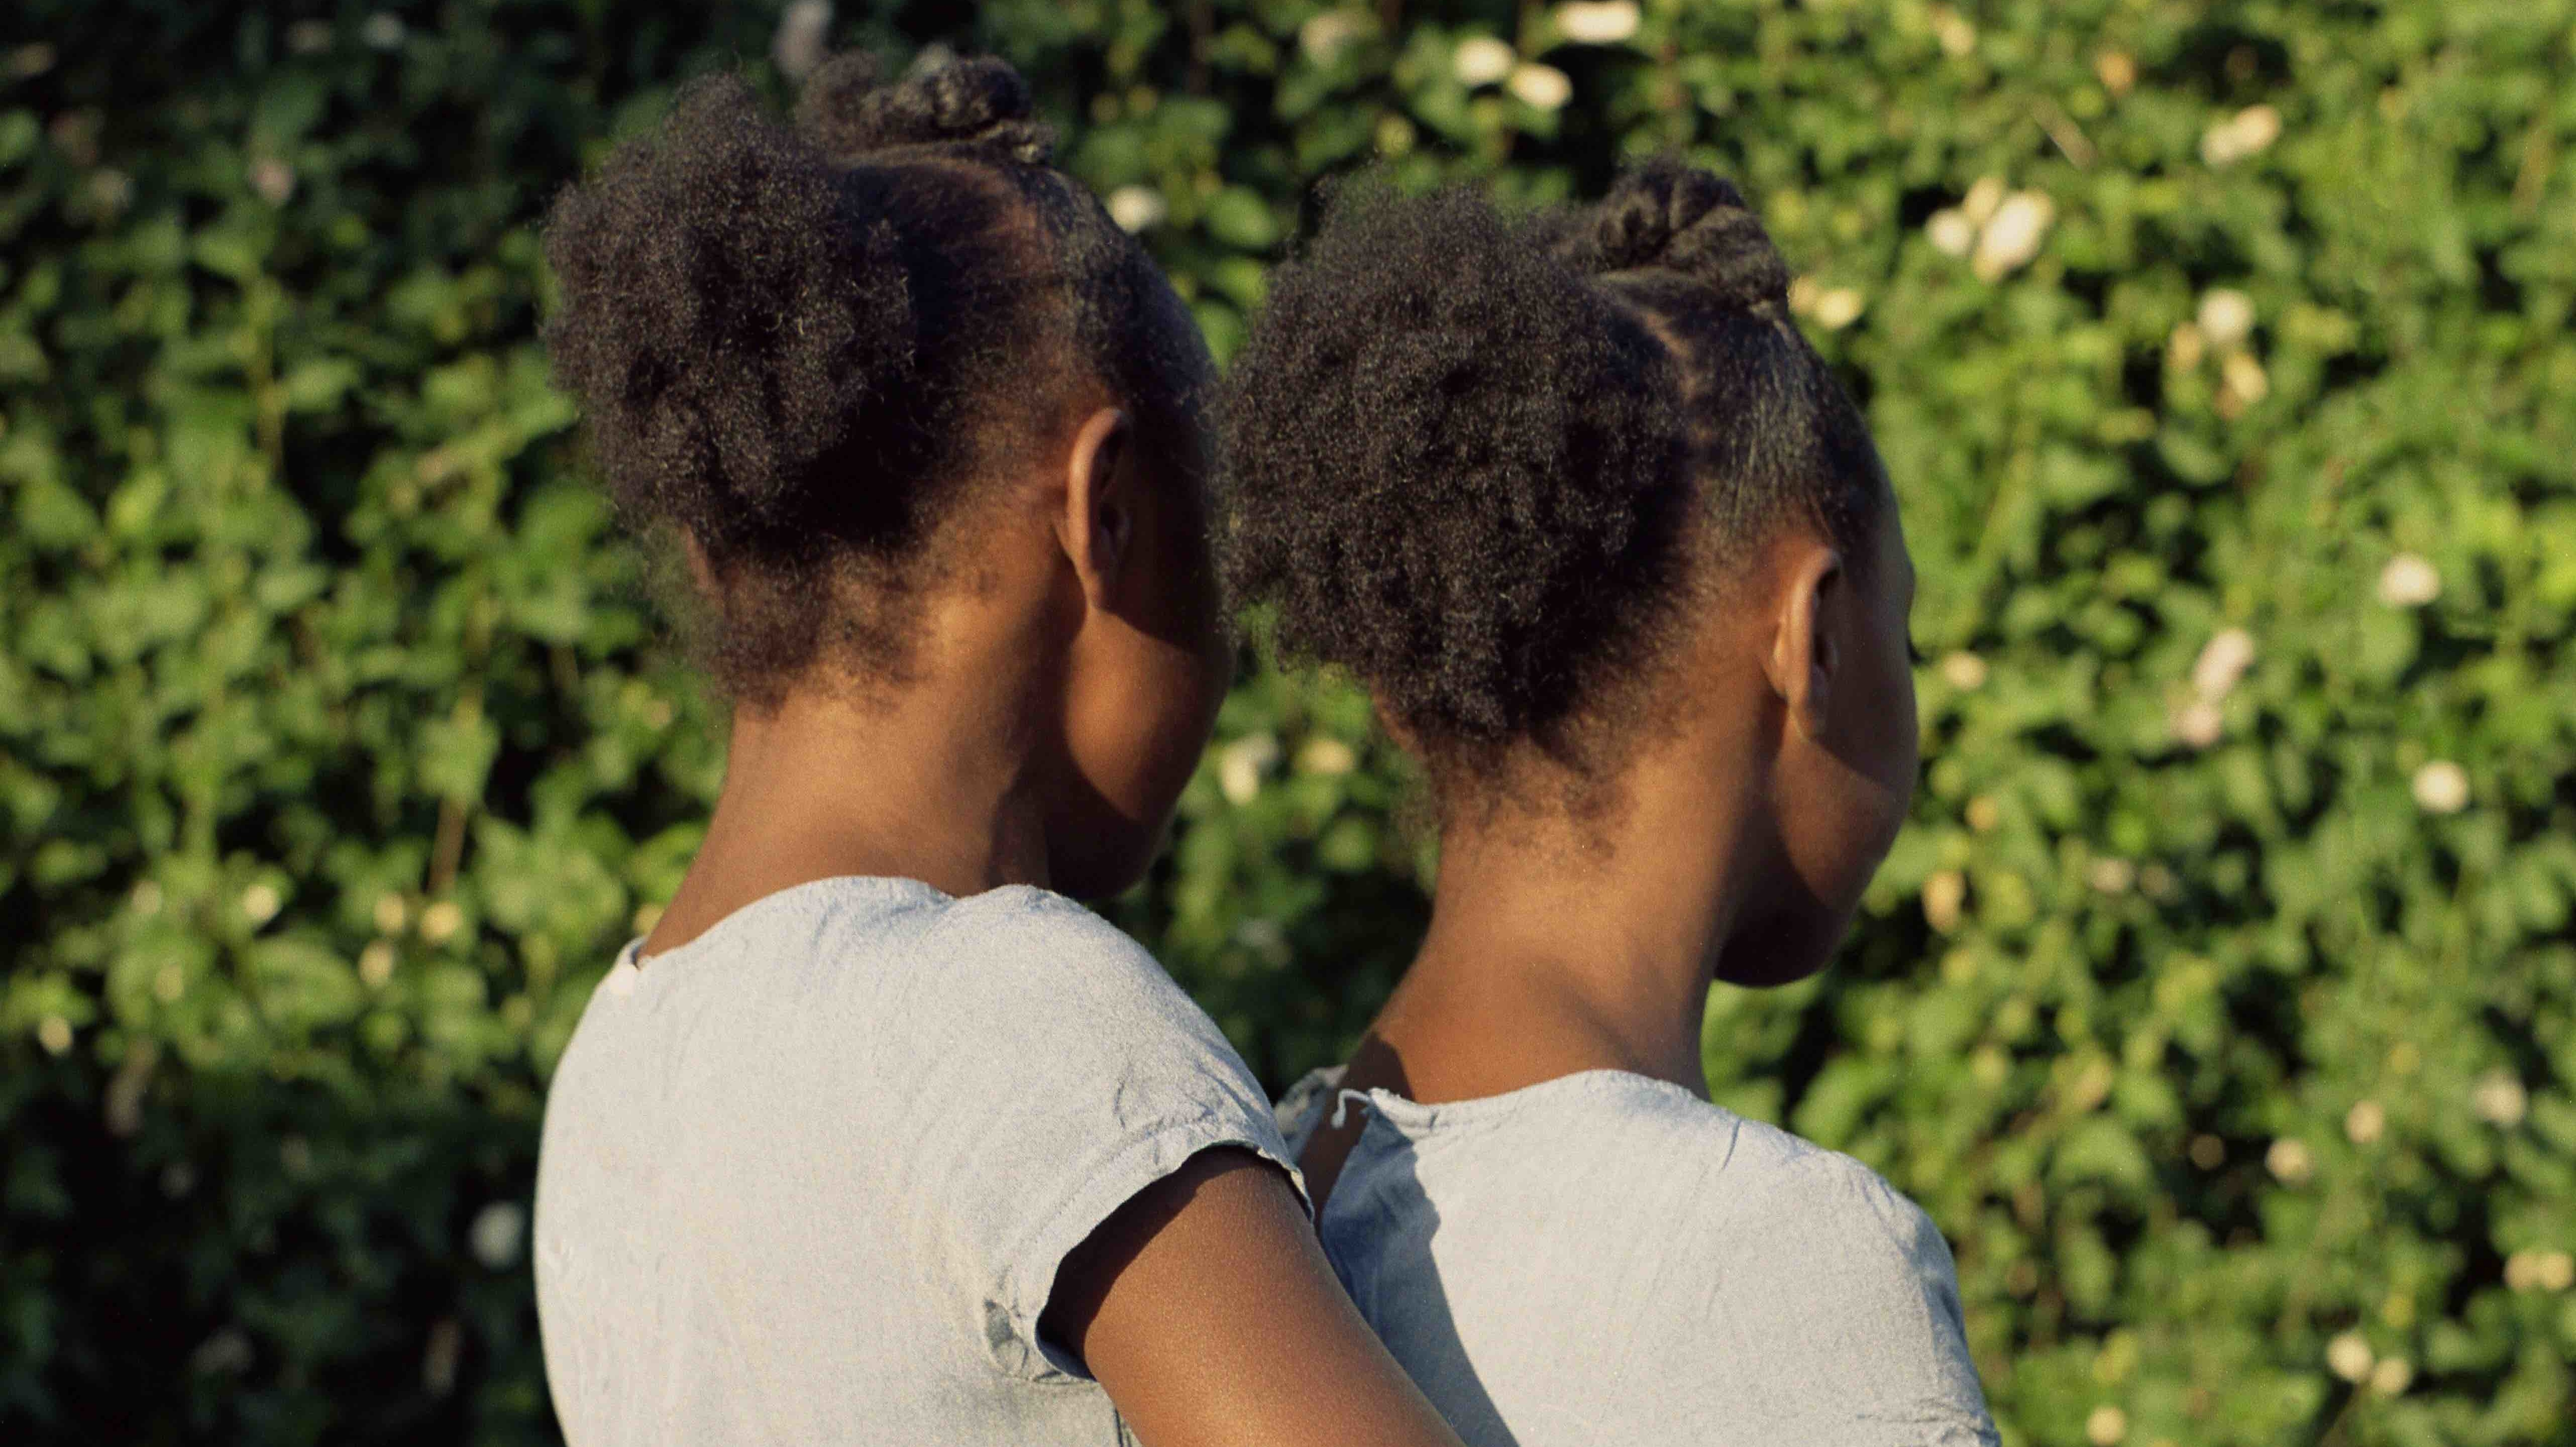 this photo series of black twins is about sisterhood and stereotypes